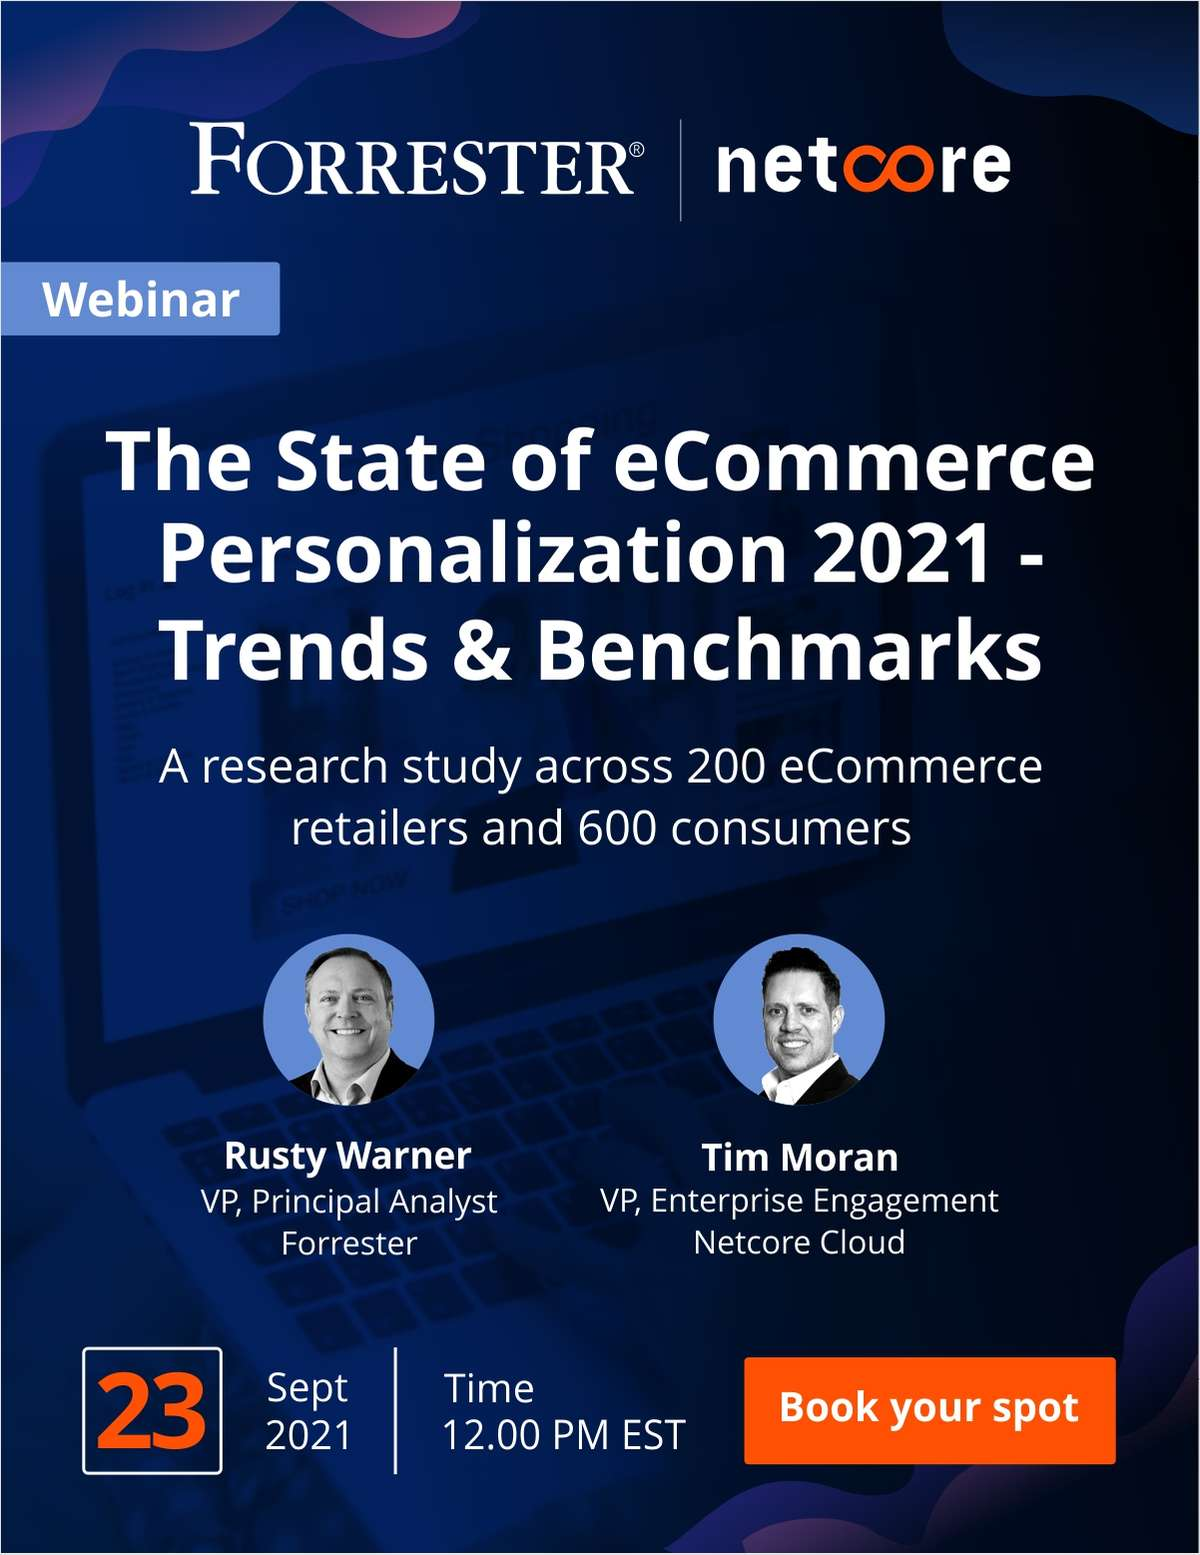 Forrester | Netcore Webinar: The State of eCommerce Personalization 2021 - Trends & Benchmarks